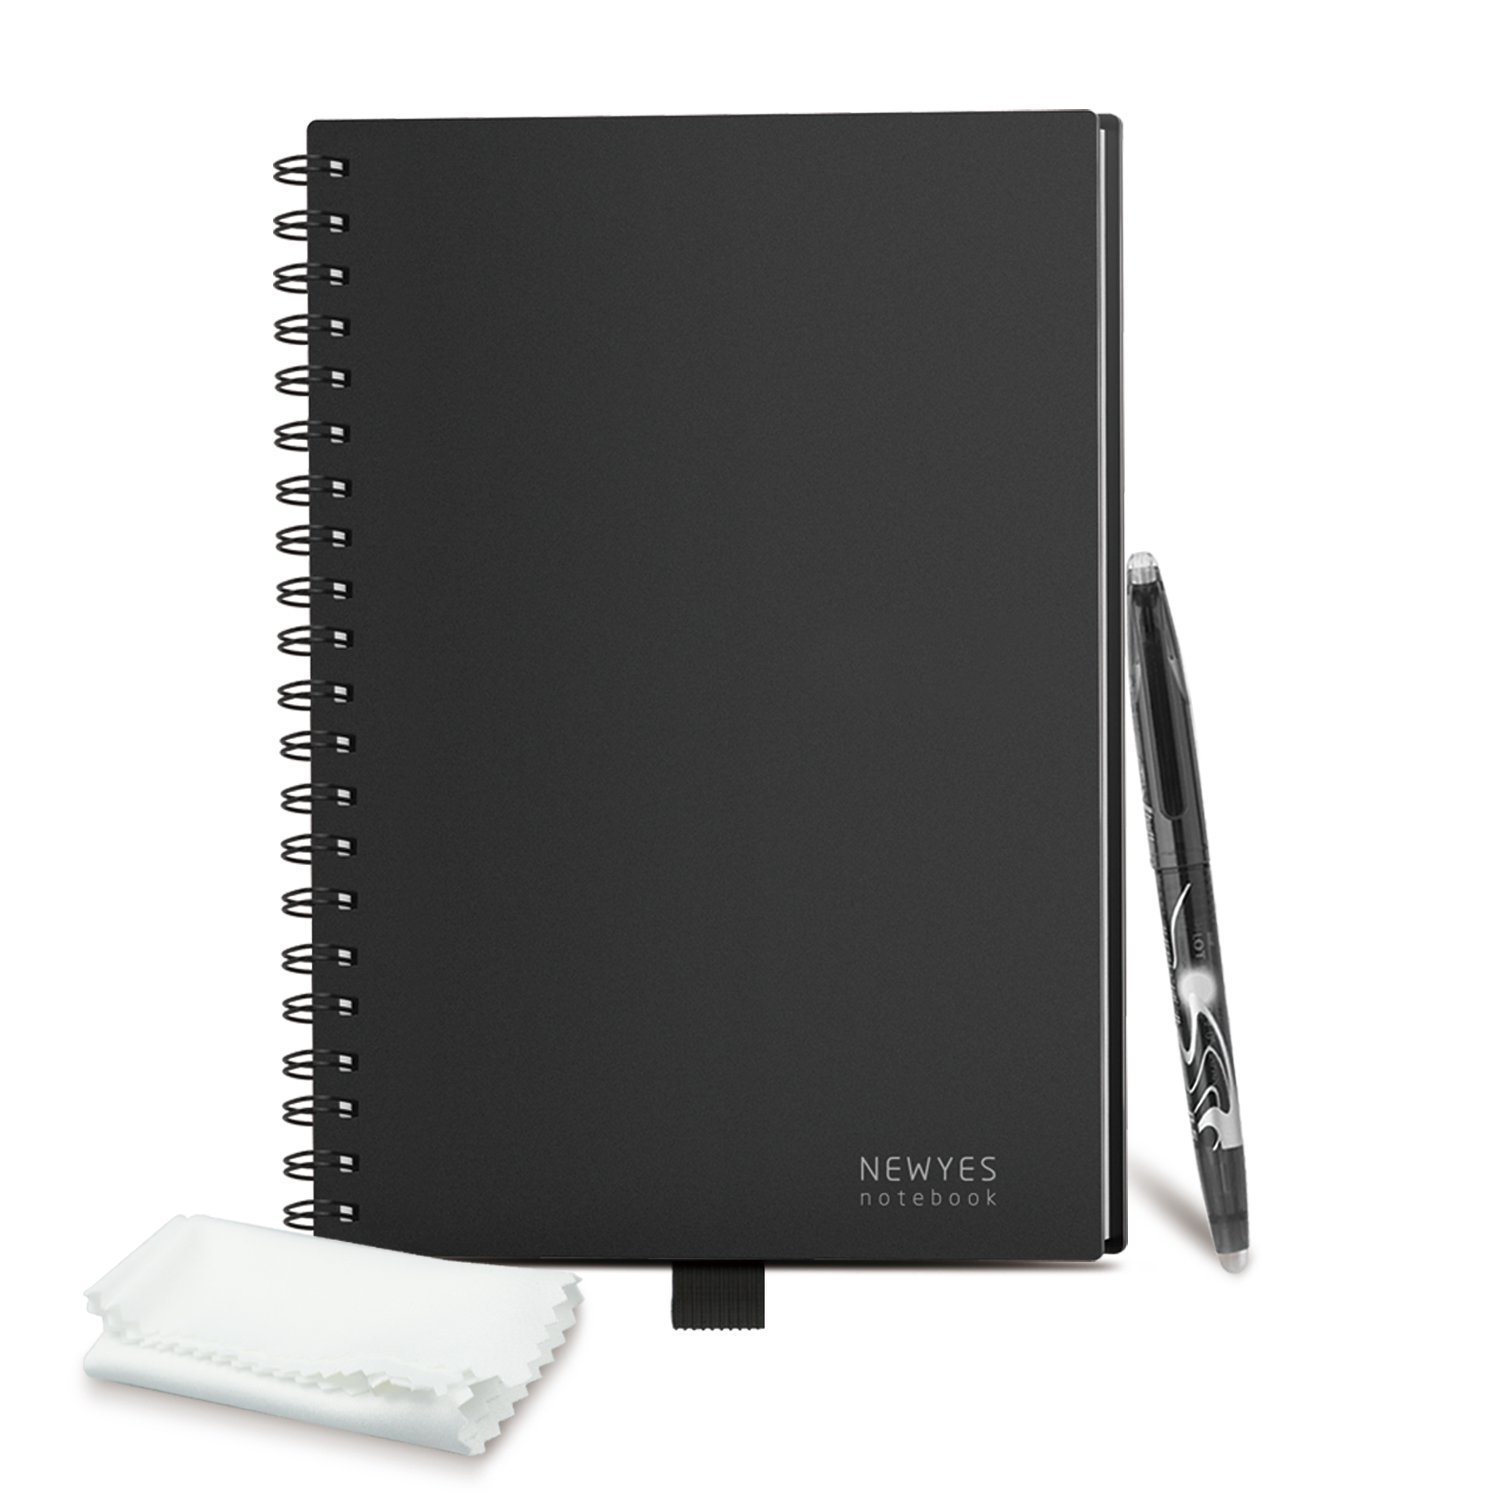 Erasable Reusable Smart Notebook Composition Jotter Sketch Pads APP Storage Available with 1 Pilot FriXion Pen Perfect for Student/Archiect/Journalist/Writer (60pages-6.99.8 Inch-B5-Black)